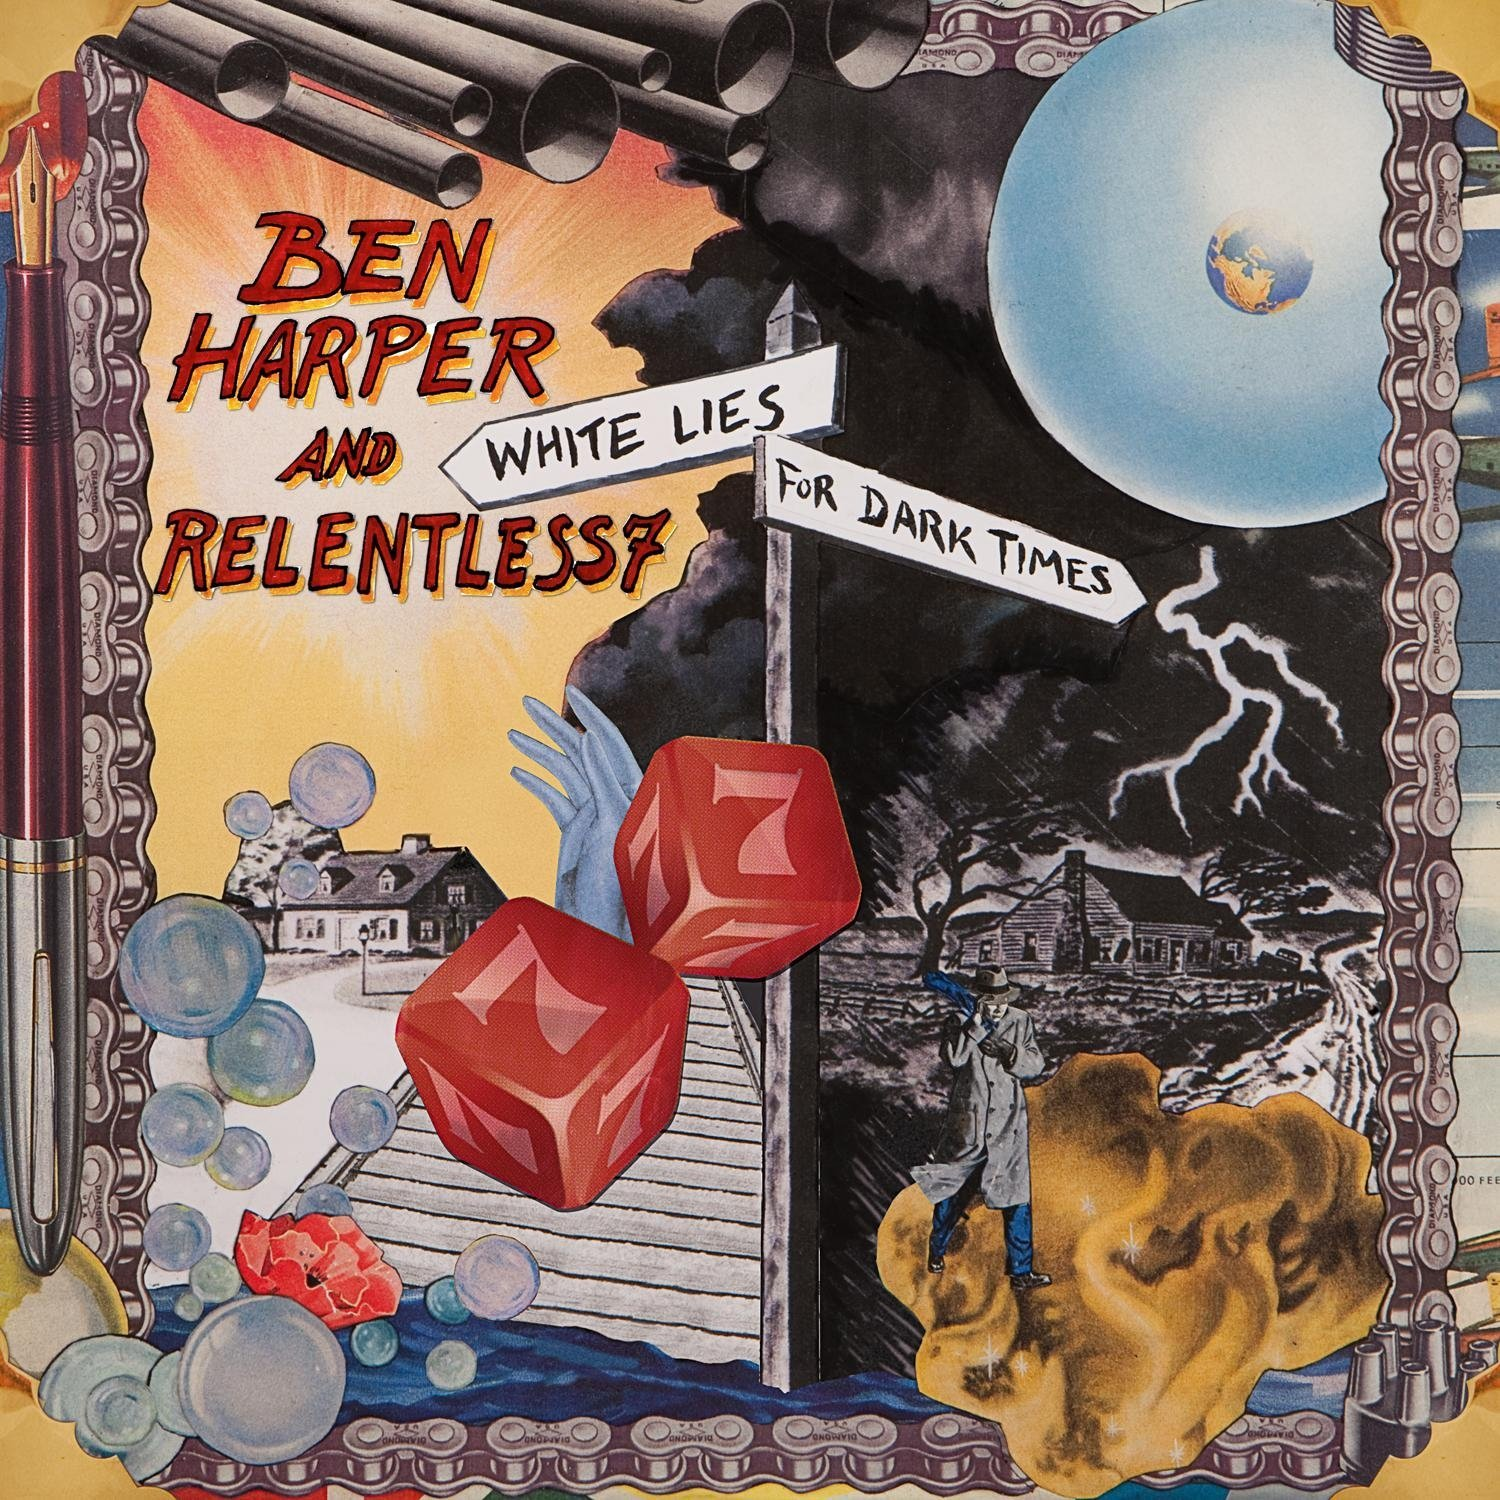 Ben Harper And Relentless 7 - White Lies For Dark Times [LP]